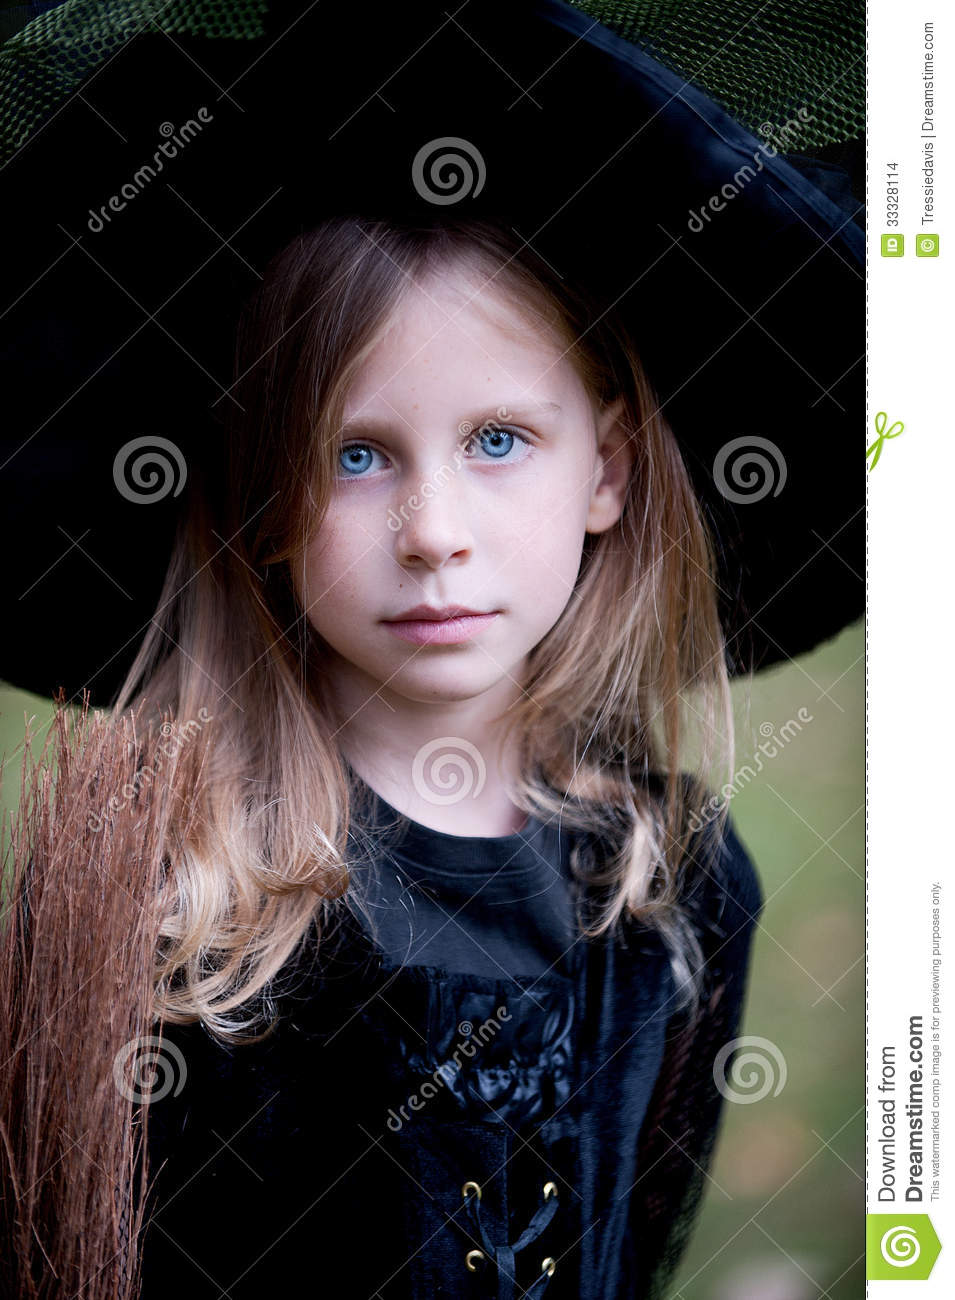 Download comp  sc 1 st  Dreamstime.com & Little Girl In Witch Costume Stock Photo - Image of youth ...